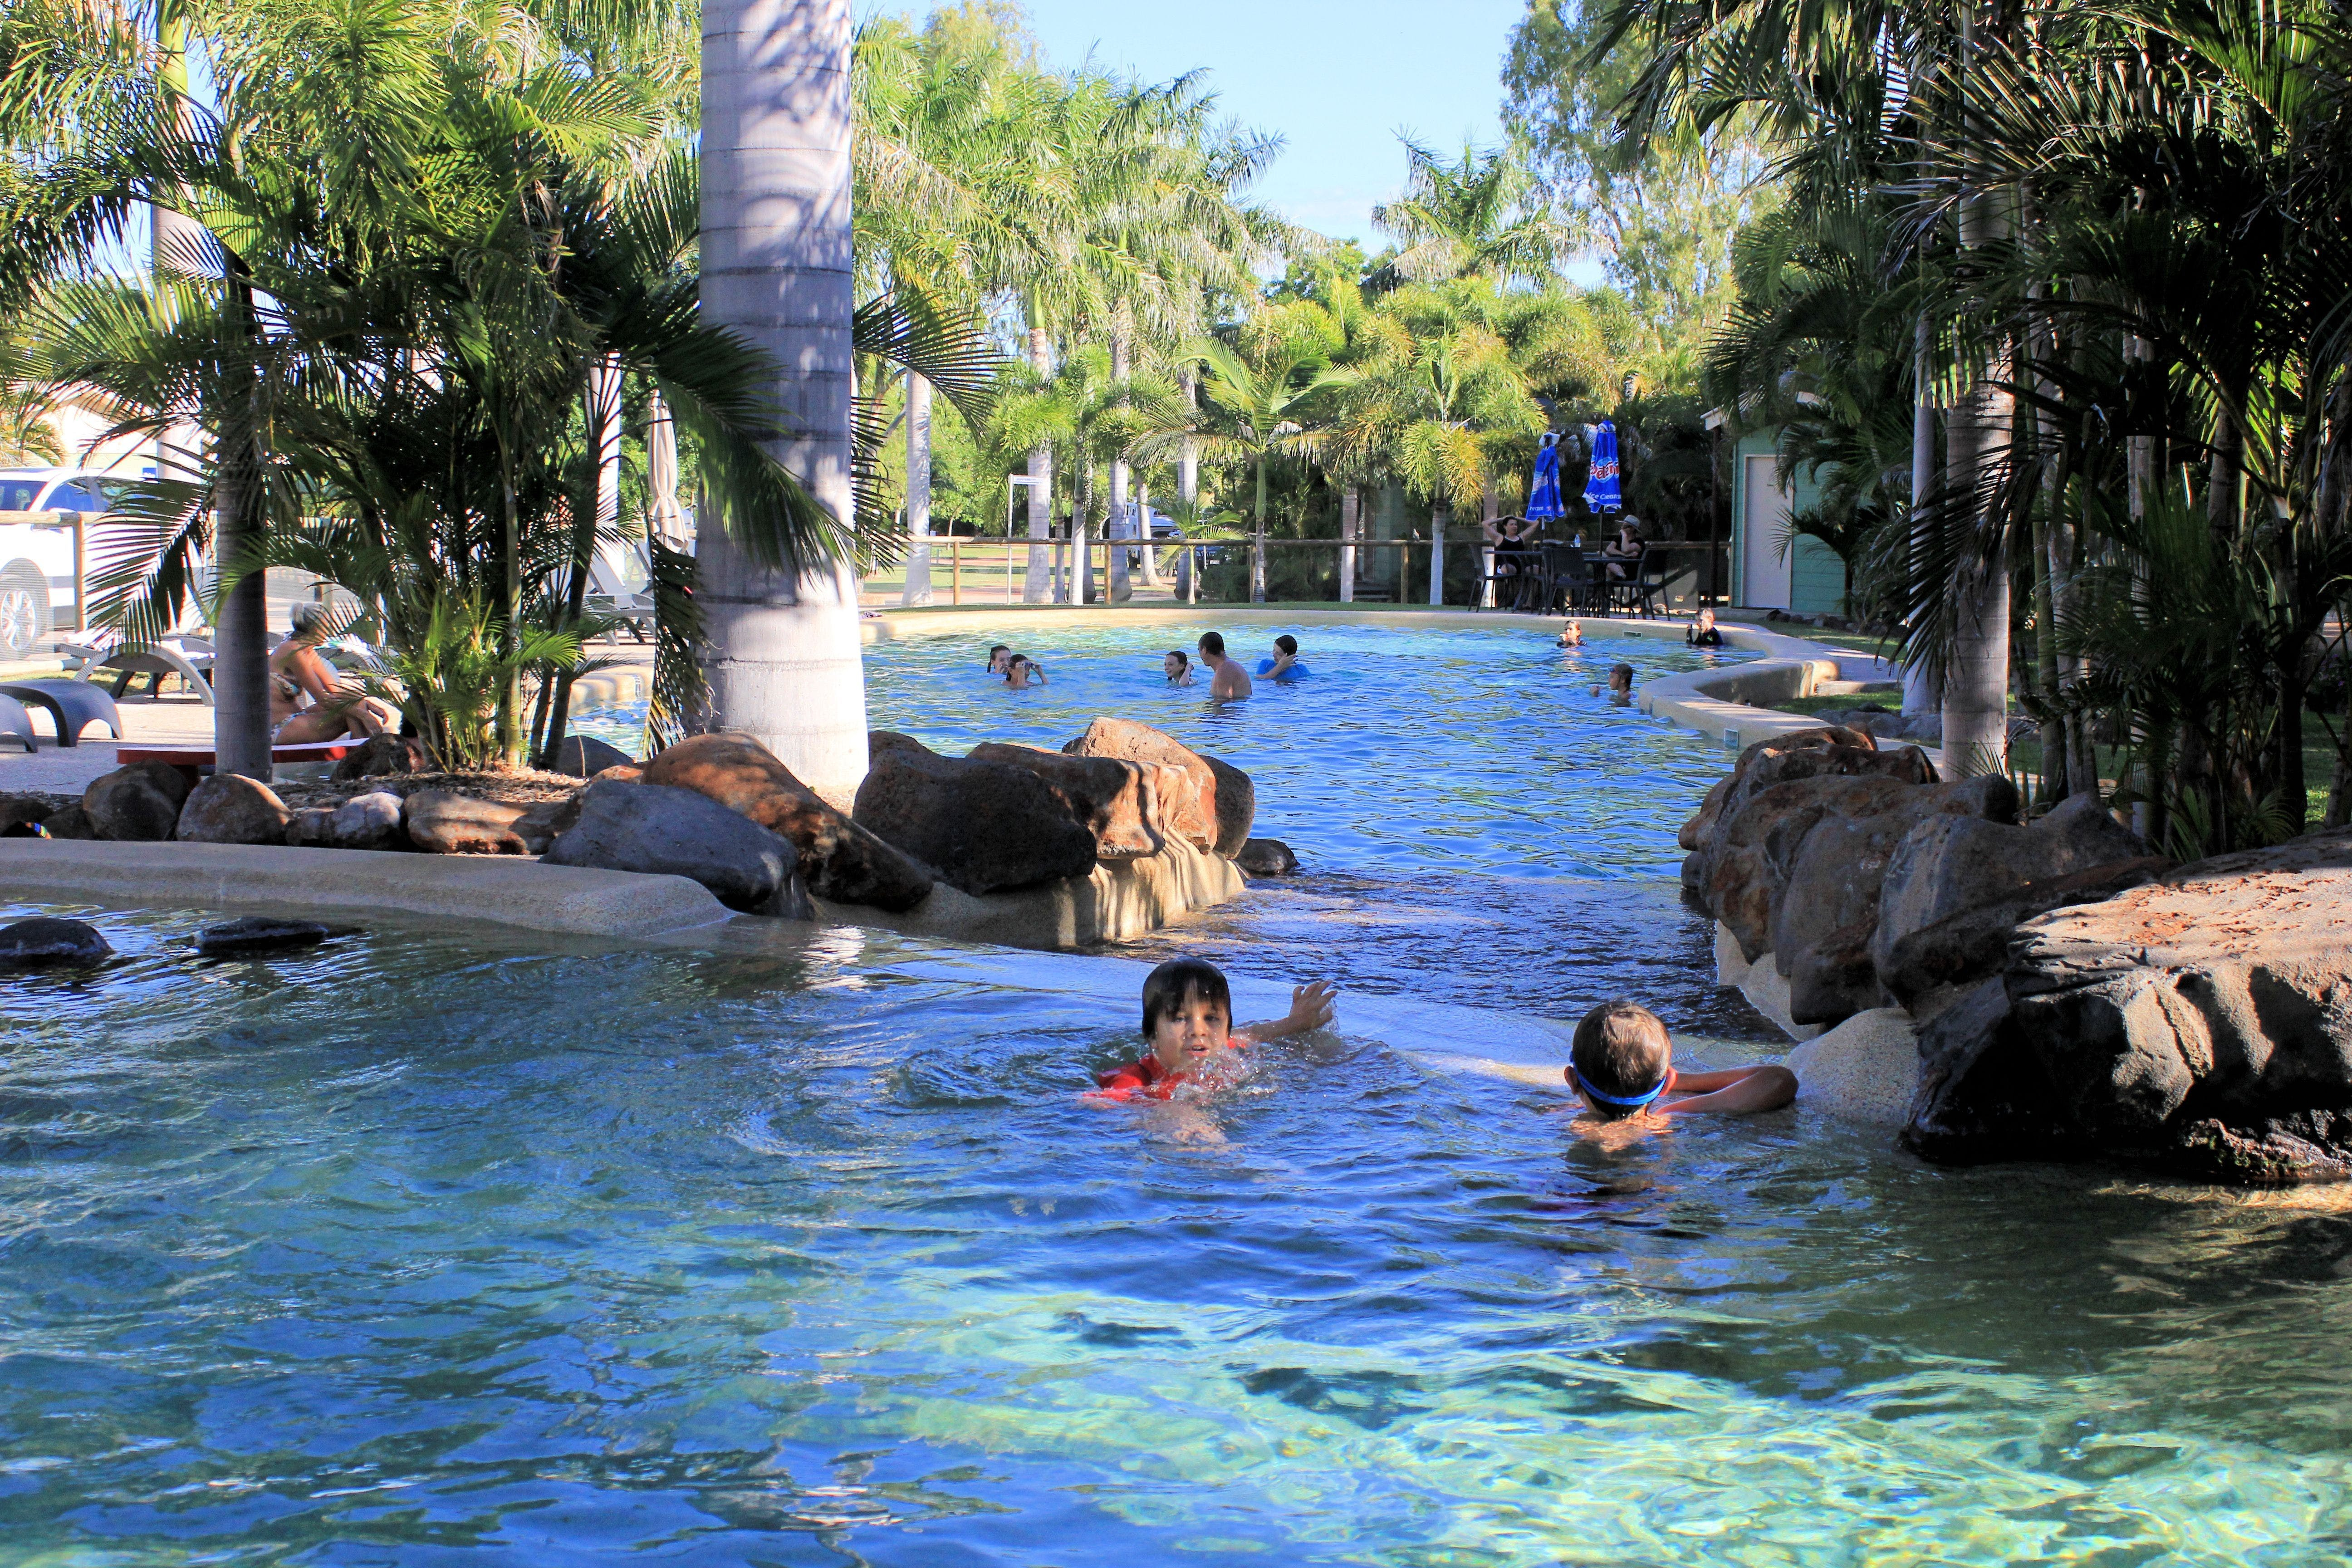 Big4 Aussie Outback Oasis Holiday Park - Accommodation in Surfers Paradise